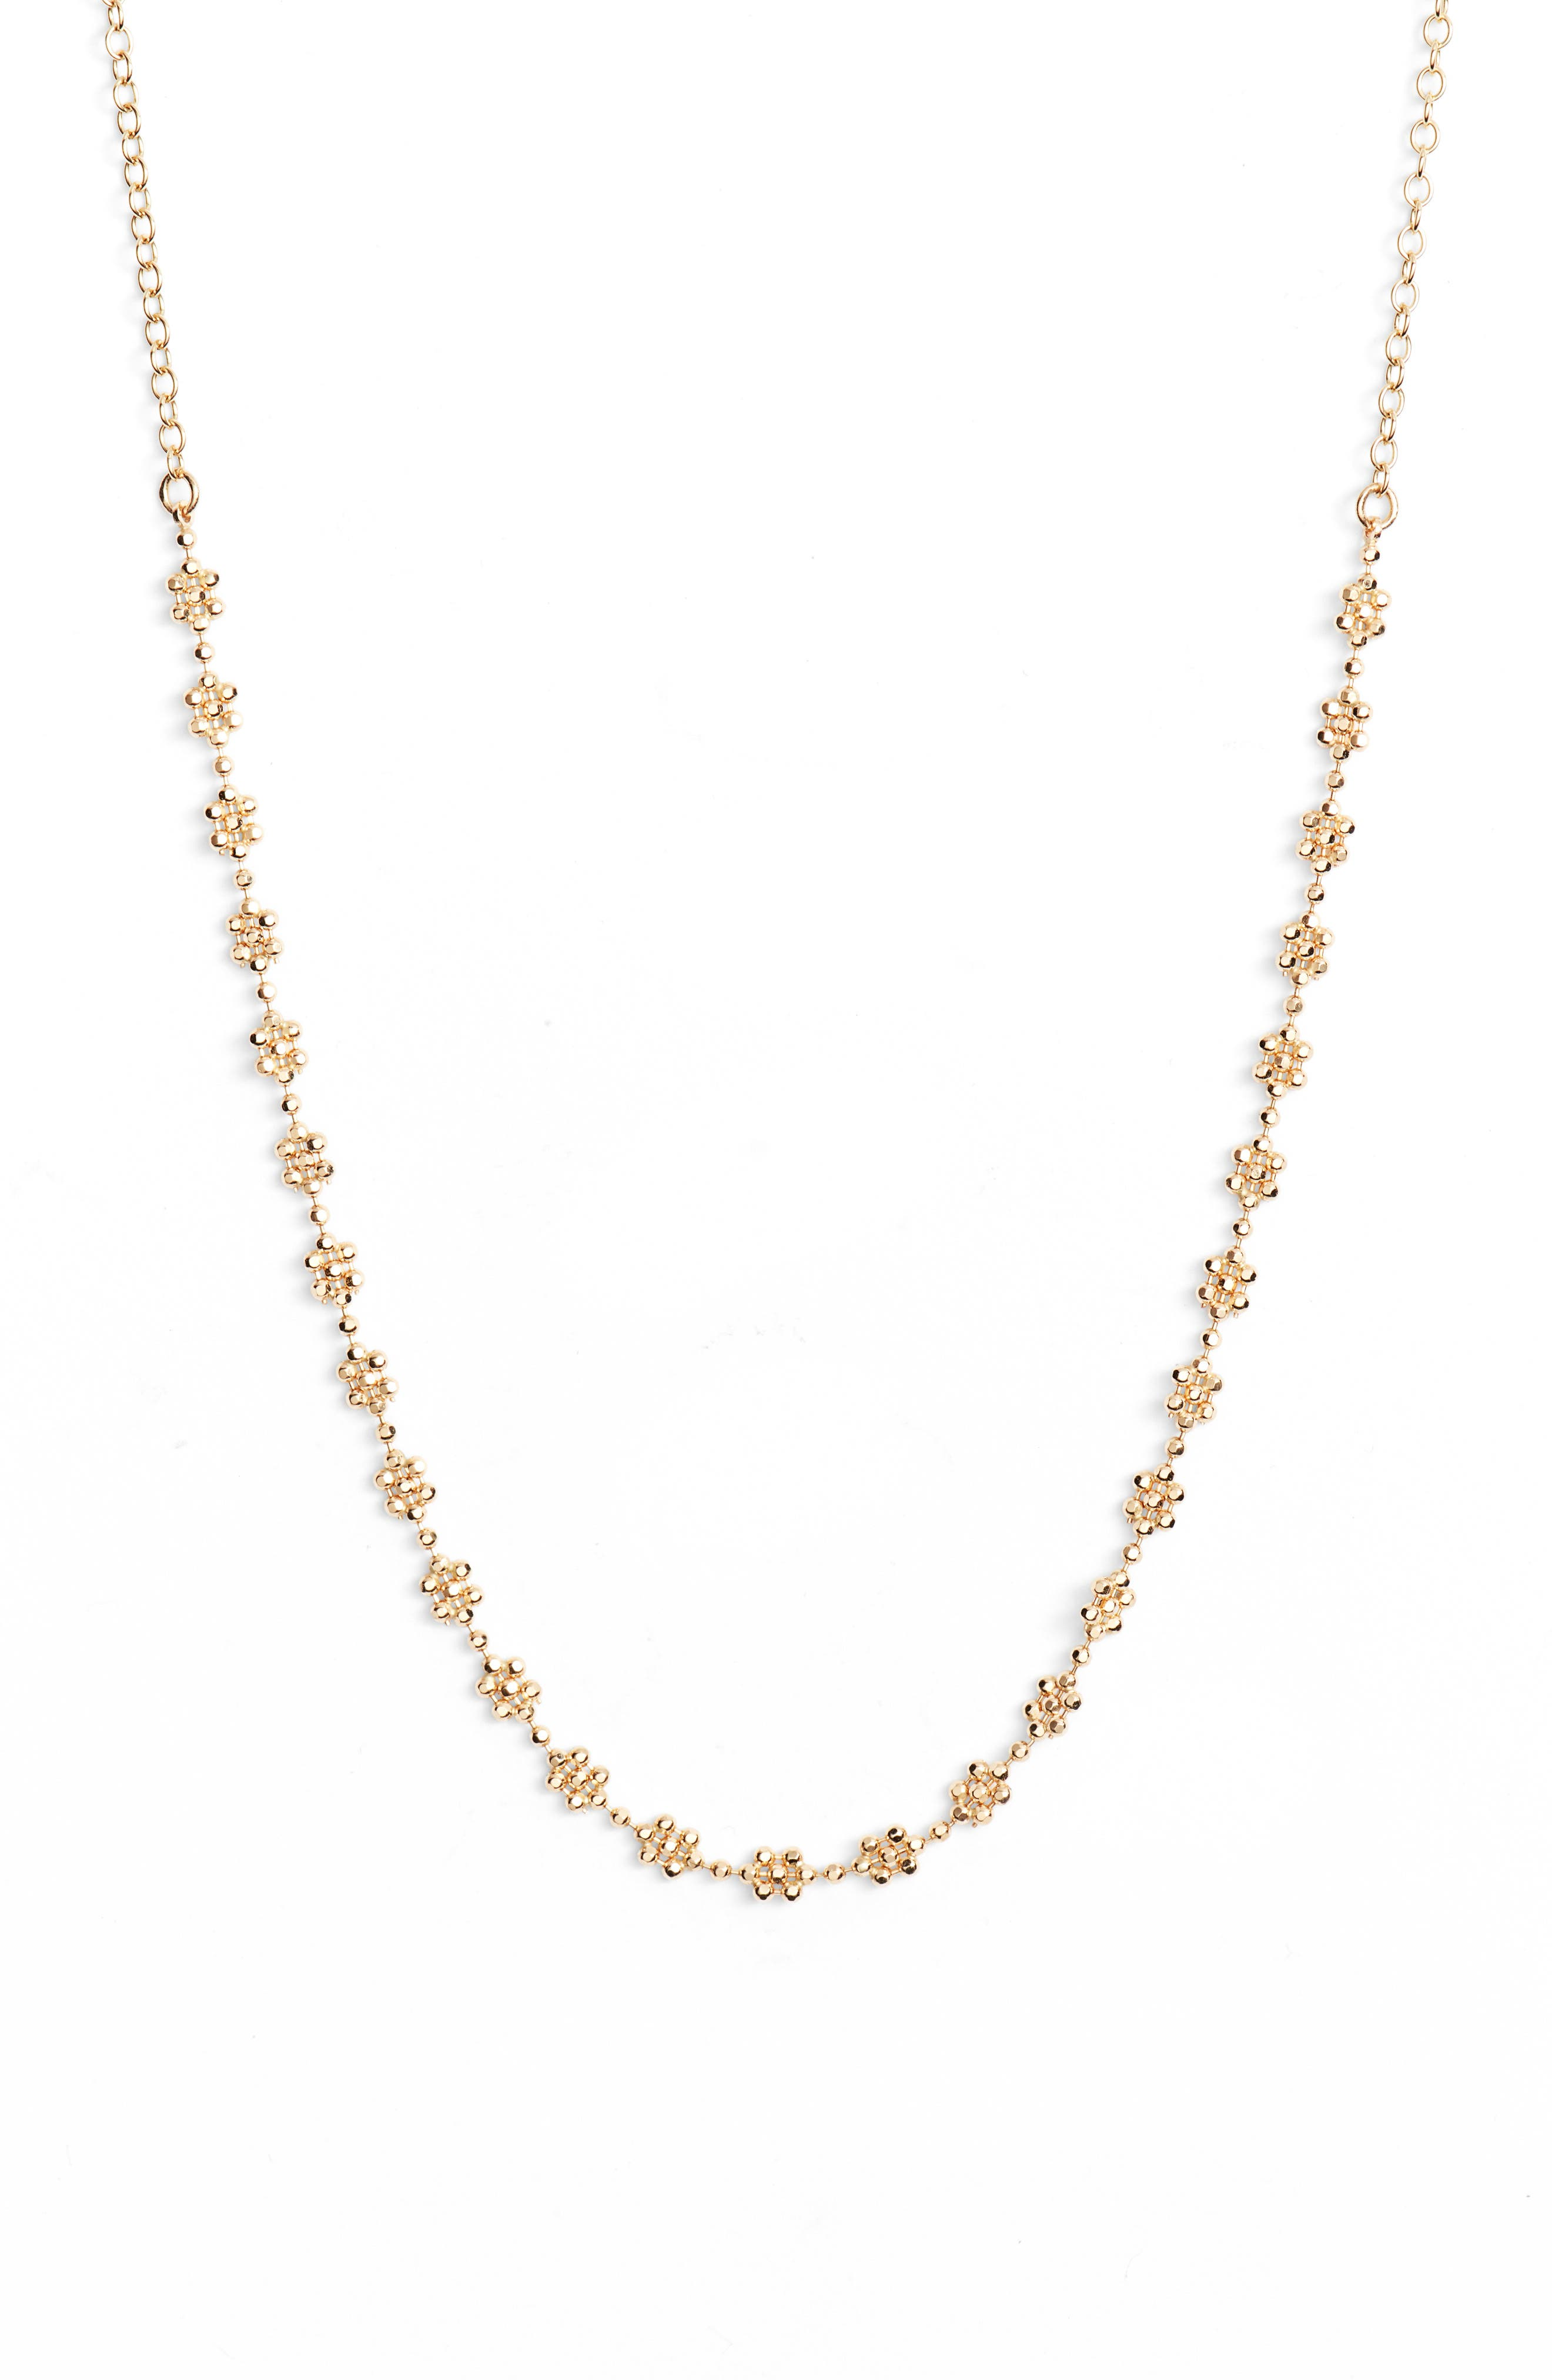 Shimmer Flower Choker Necklace,                         Main,                         color, YELLOW GOLD